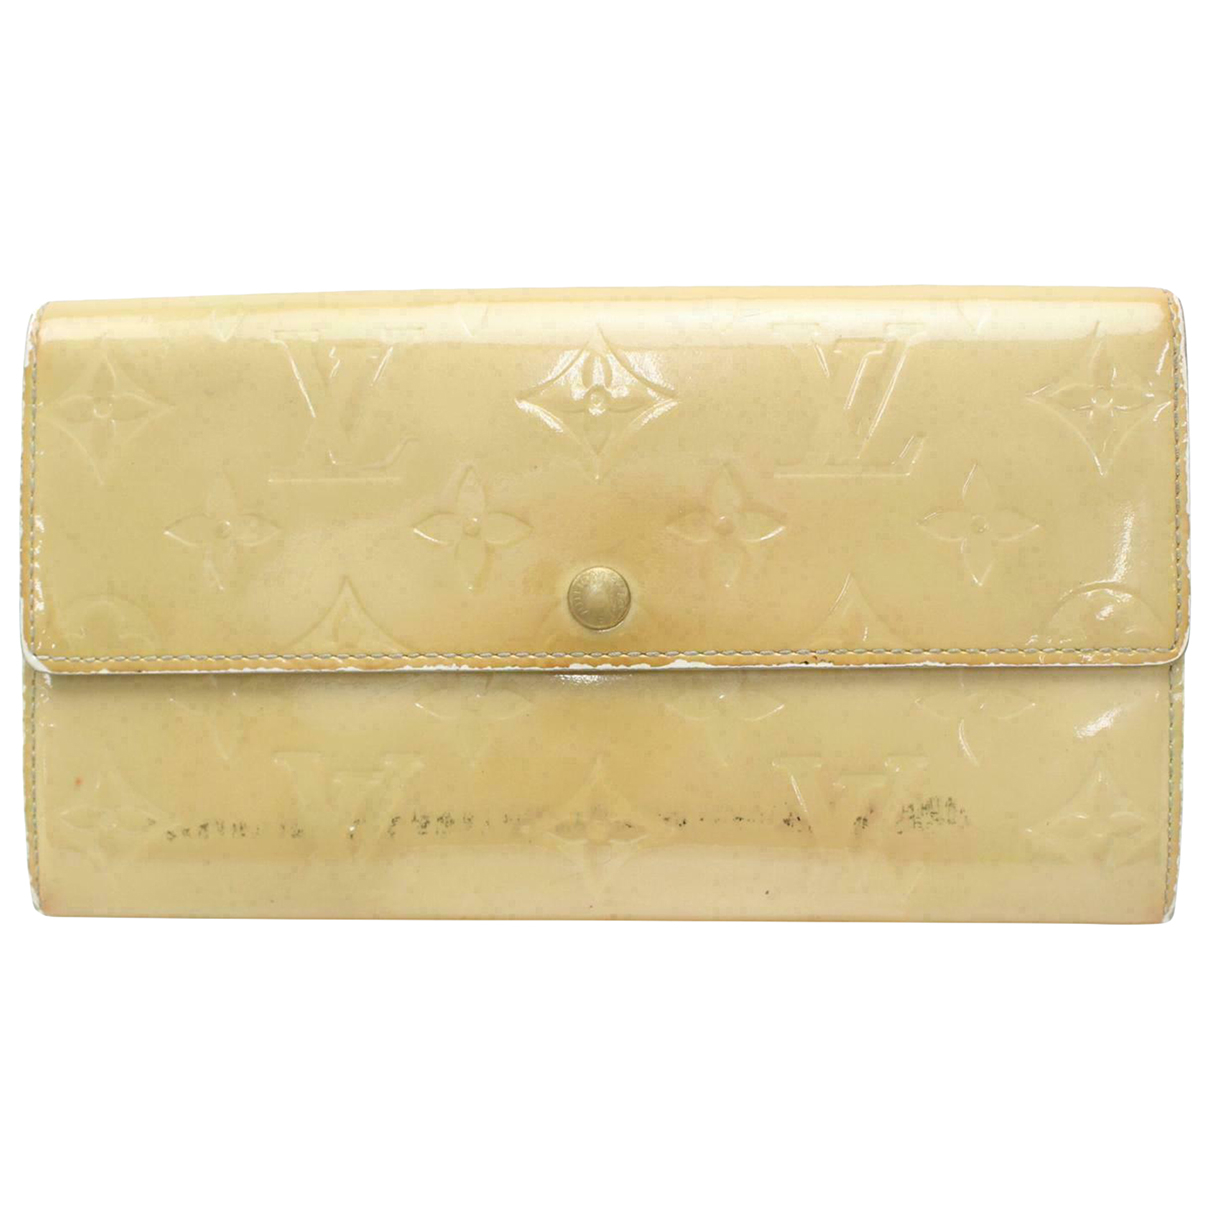 Louis Vuitton N Patent leather wallet for Women N